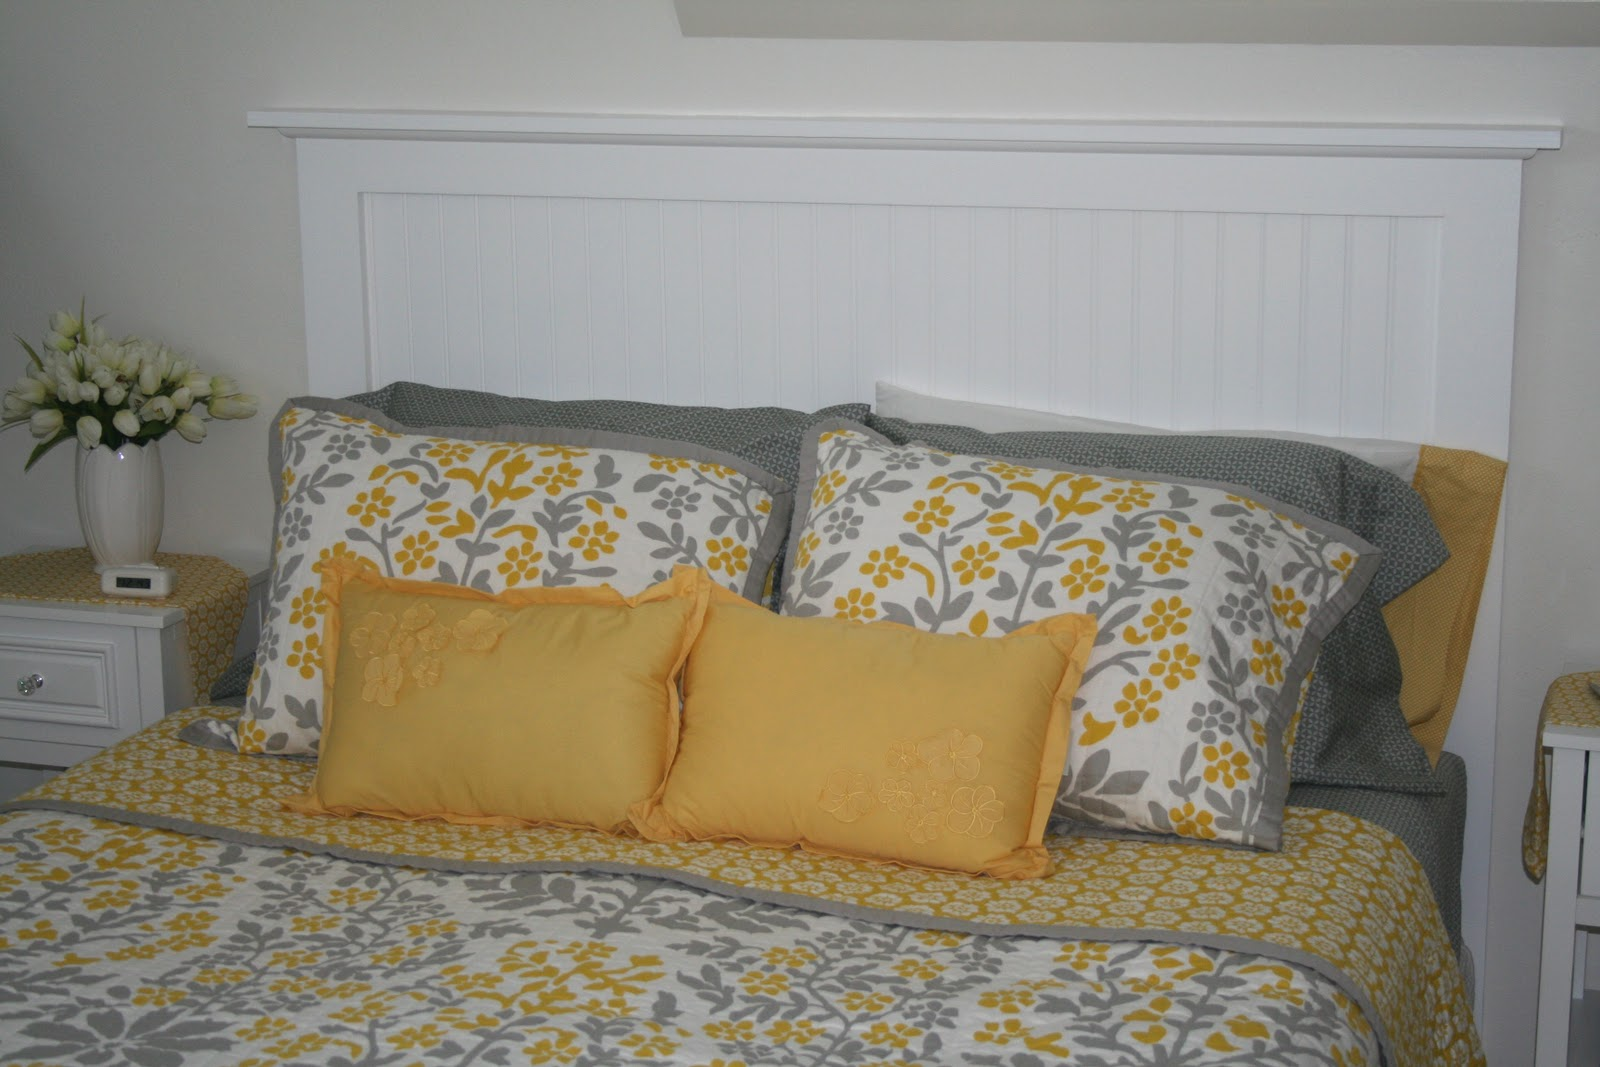 Our Nest Of 3 The Beadboard Headboard My Husband Made